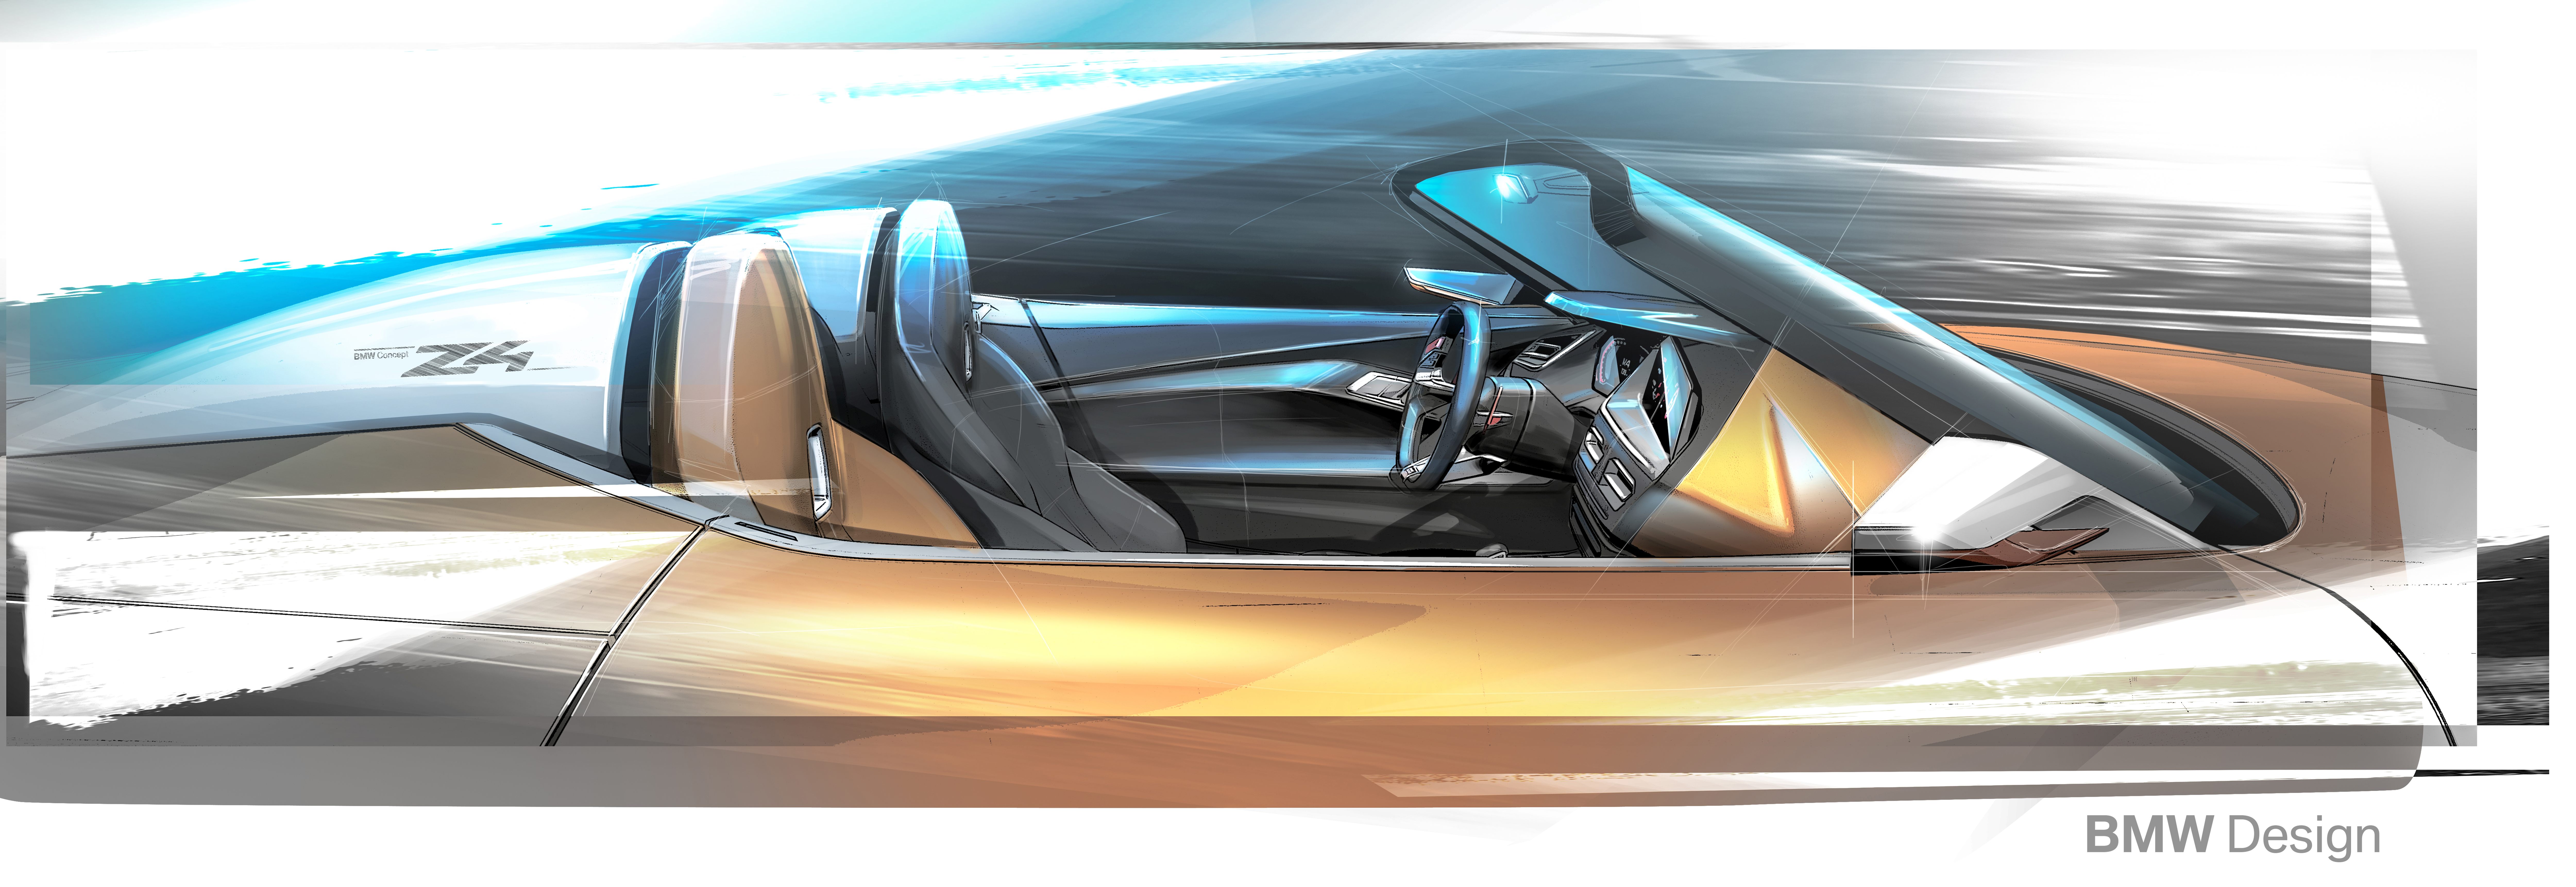 BMW Z4 Concept debuts – production roadster in 2018 Image #700545